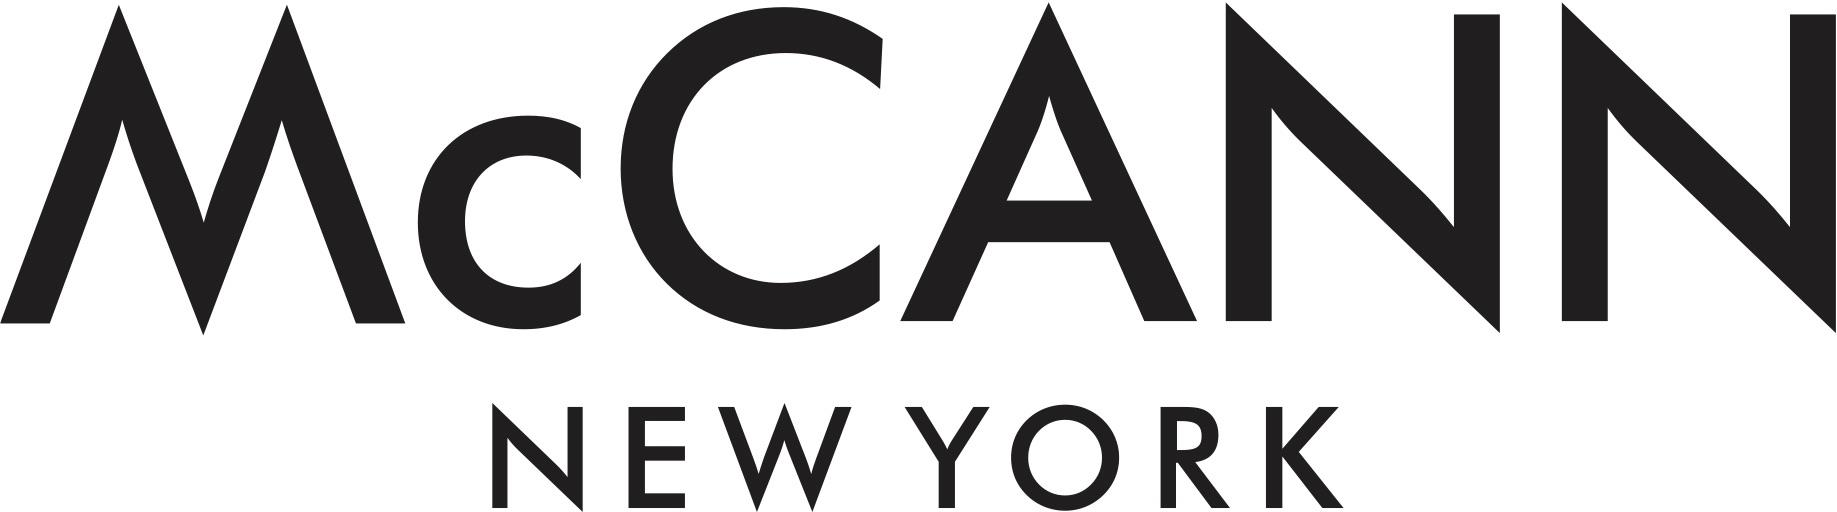 McCann NY Named Agency of the Year At One Show Awards